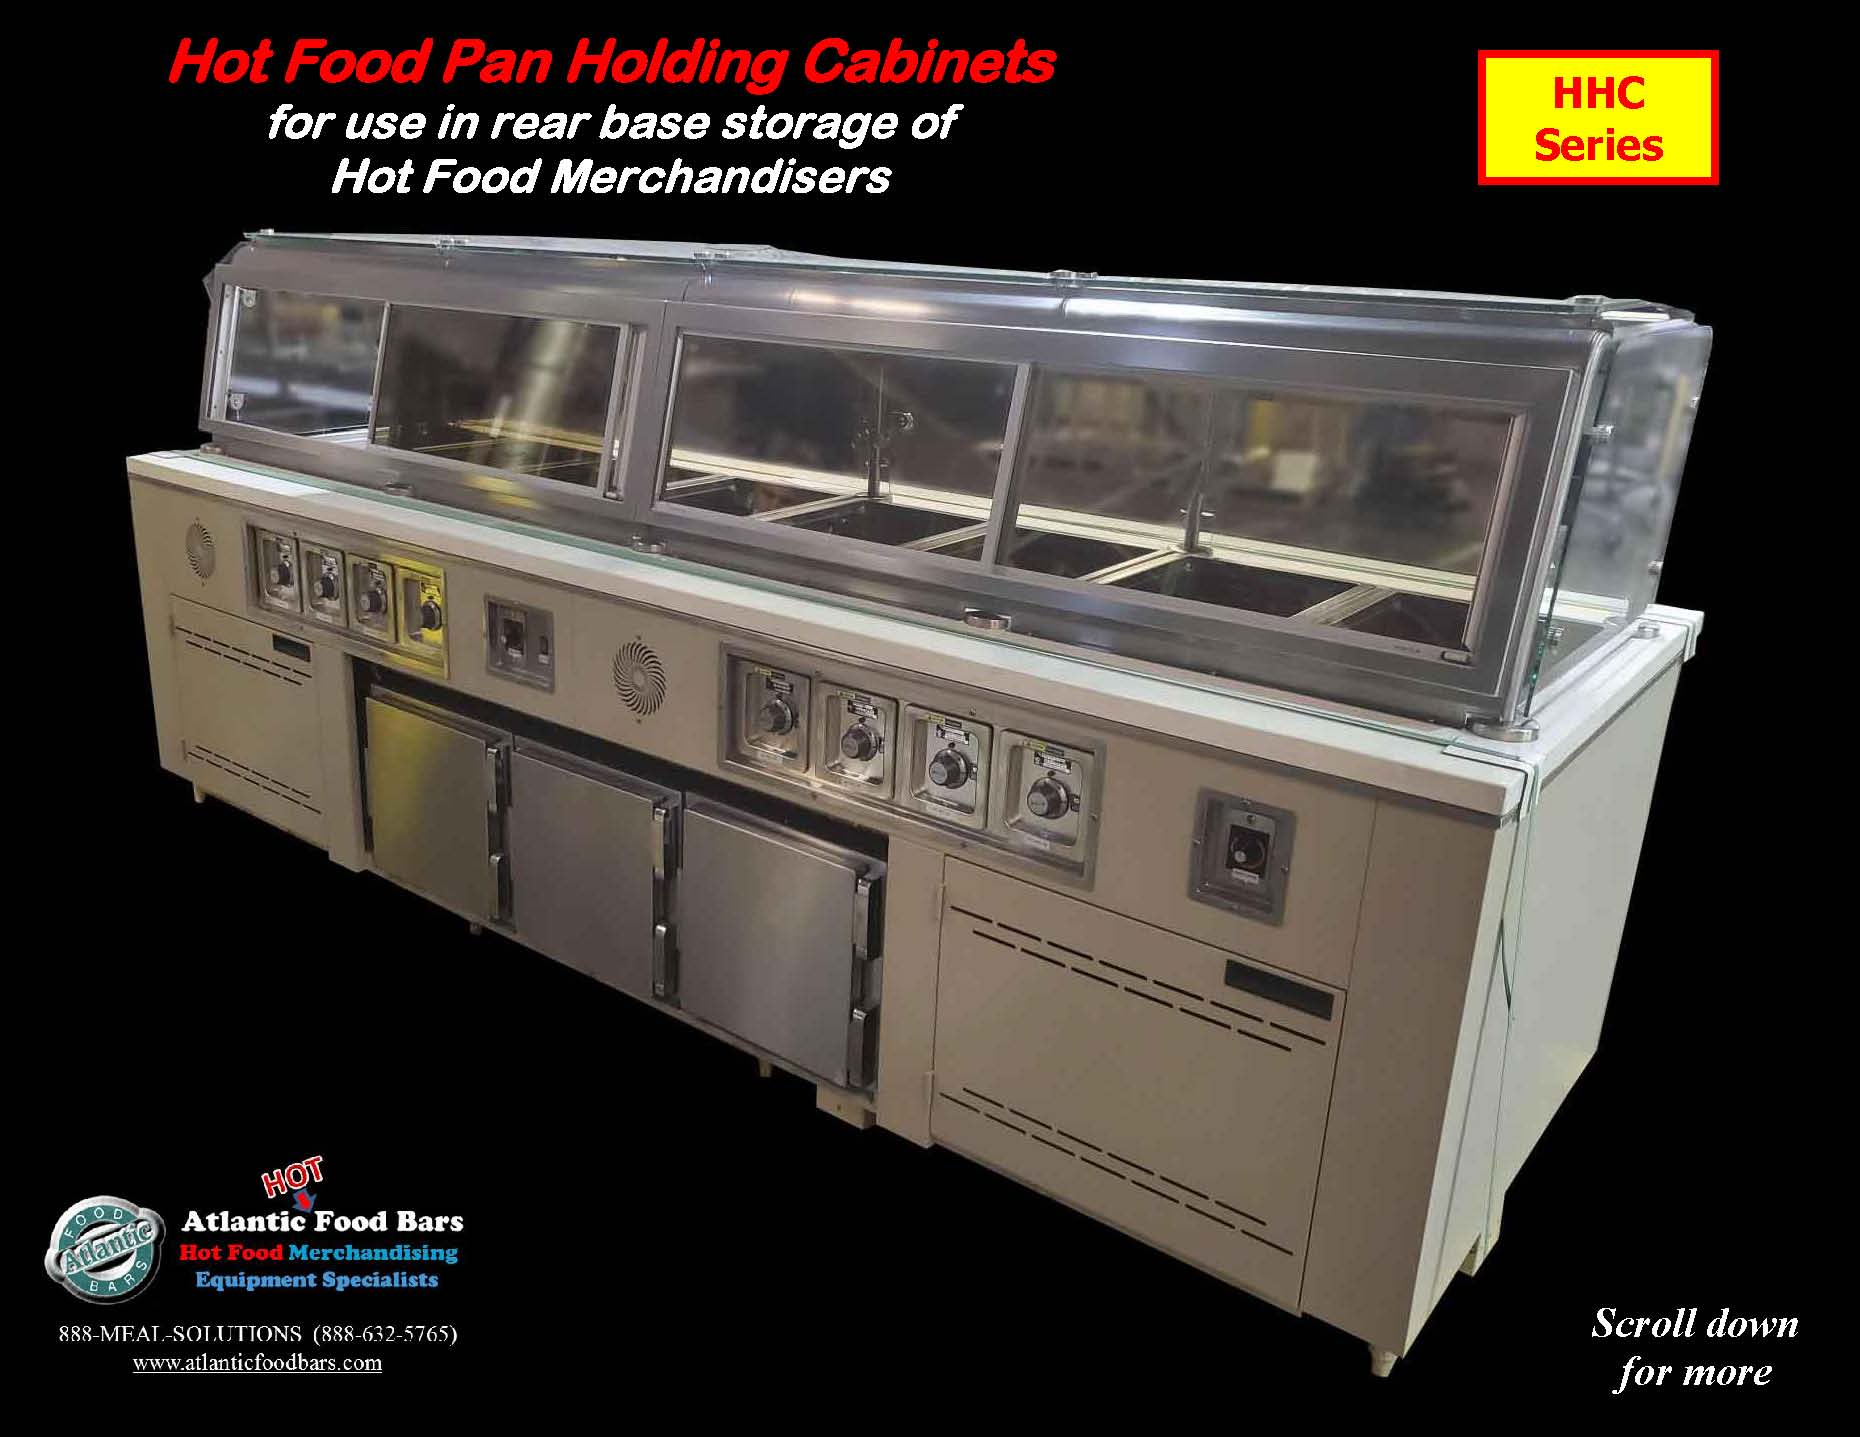 Atlantic Food Bars - Hot Food Pan Holding Cabinets for use in rear base storage of hot food merchandisers - HHC_Page_2